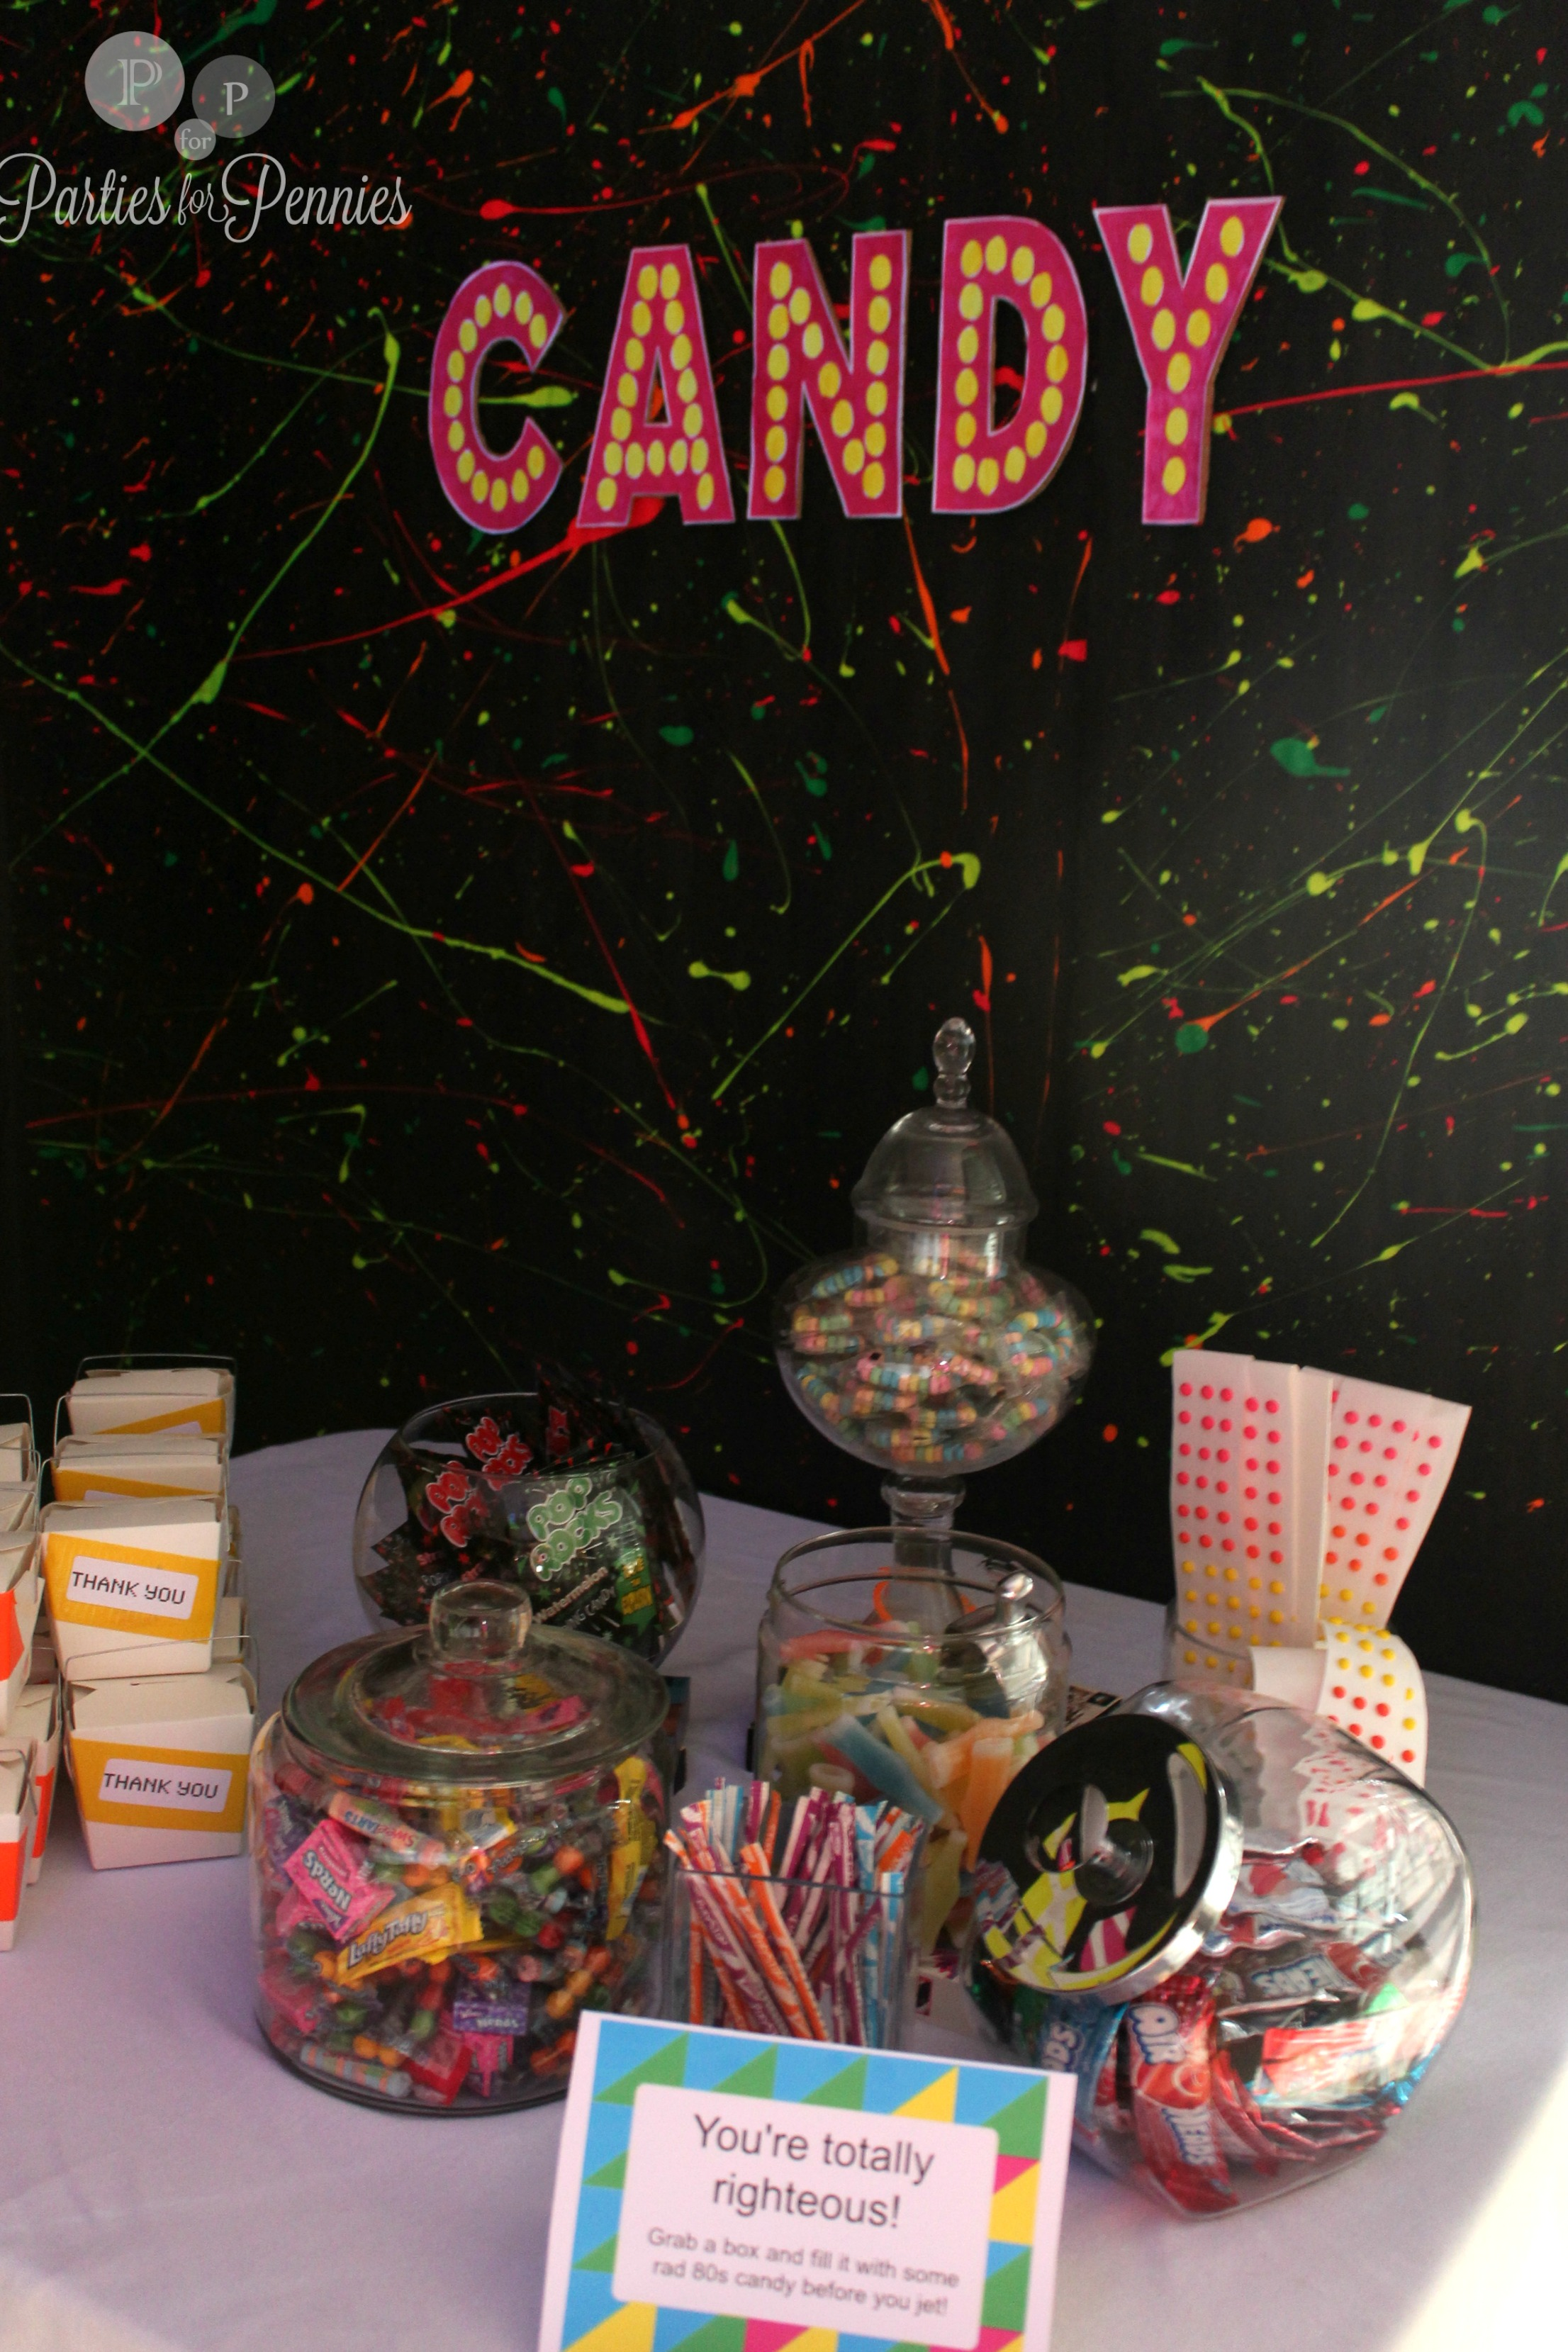 Candy S Colorado Cranker Blog Csm Tools For Cranking: Parties For Pennies